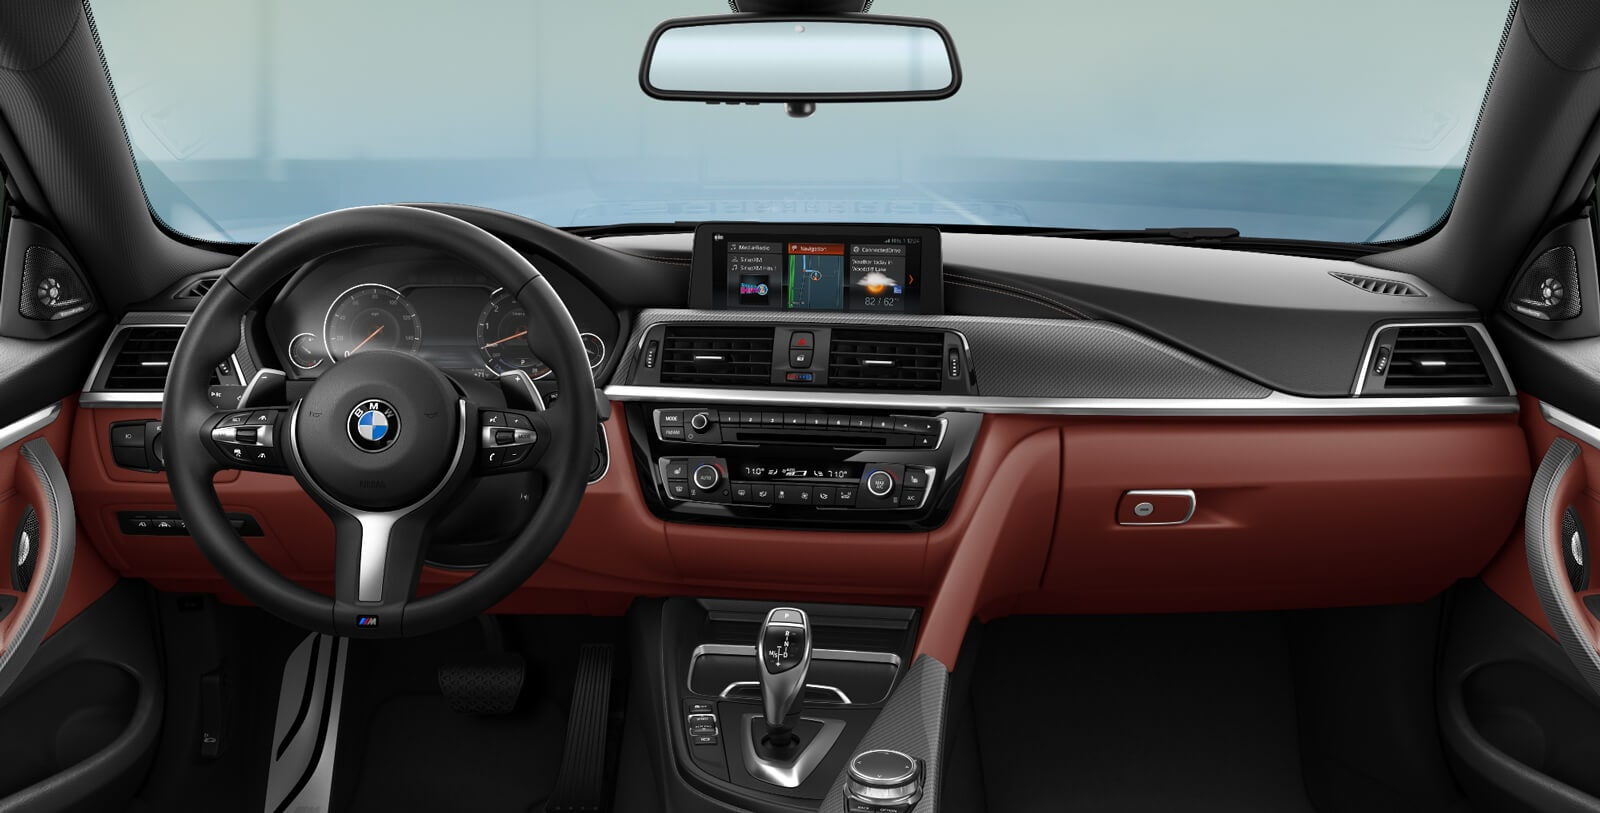 Interior shot of the 2019 BMW 4 Series Coupe showing steering wheel, instrument cluster, iDrive screen, and driving controls